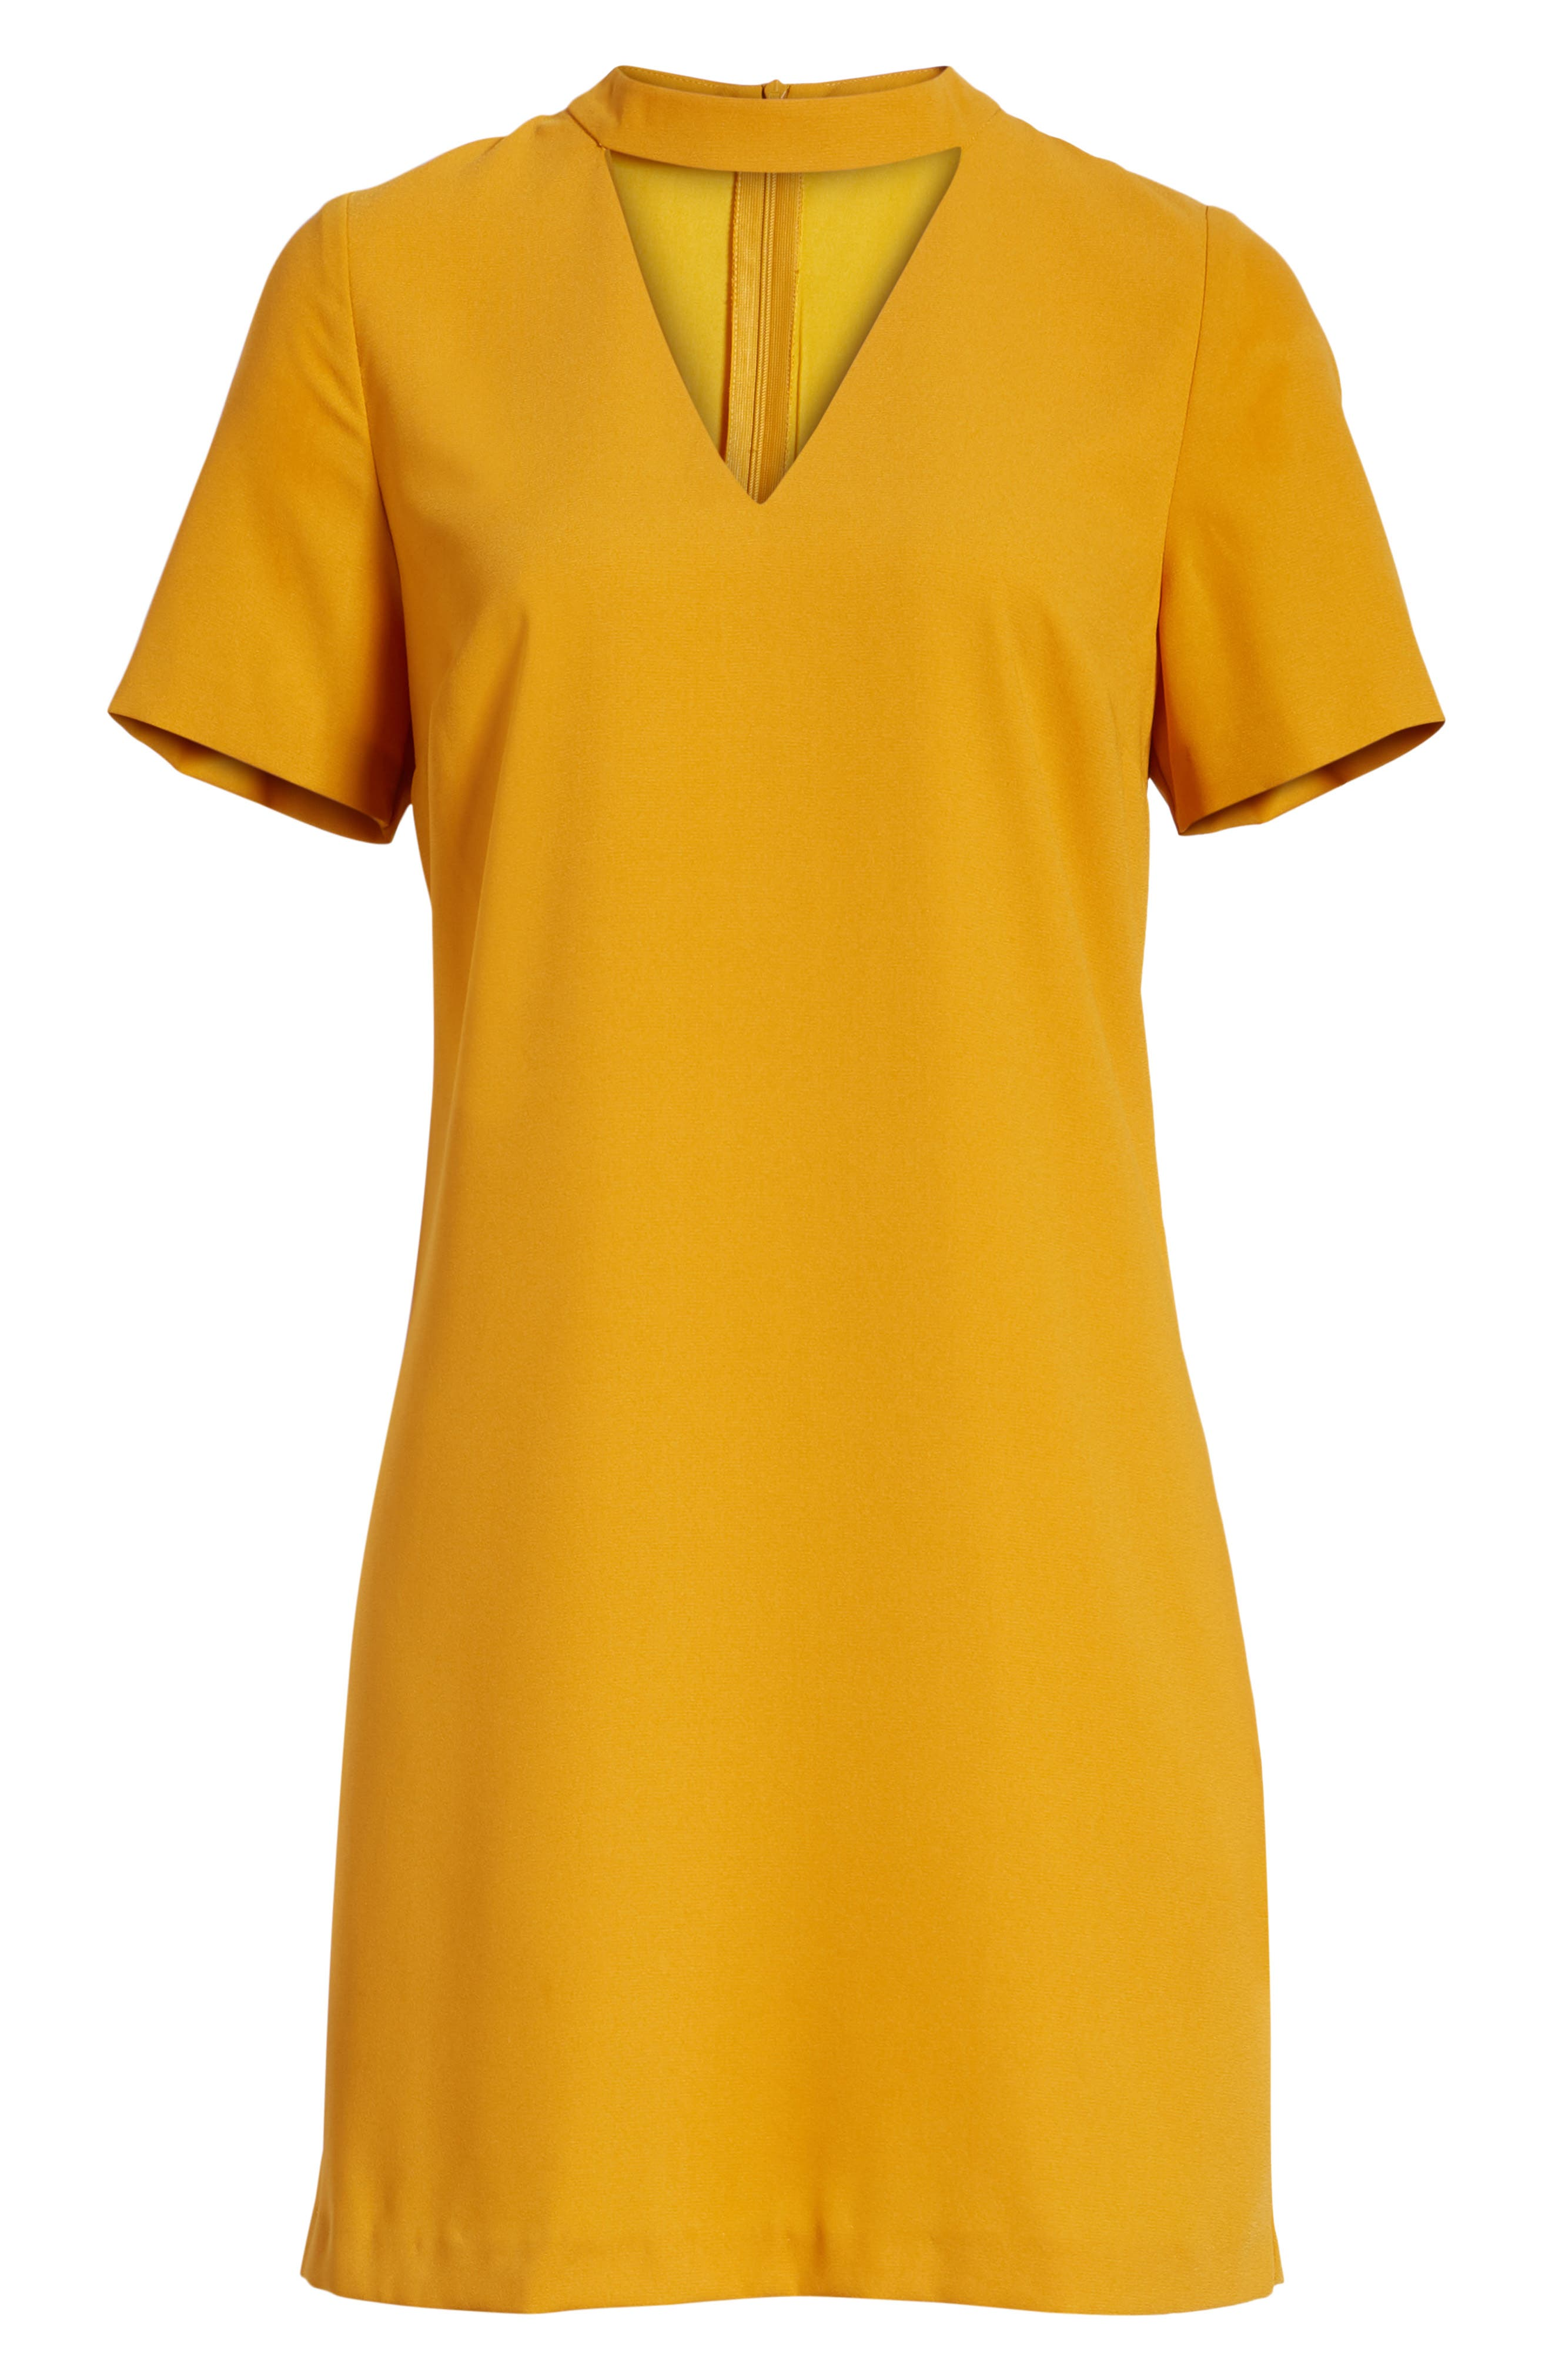 Bishop + Young Sasha Shift Dress,                             Alternate thumbnail 7, color,                             Mustard